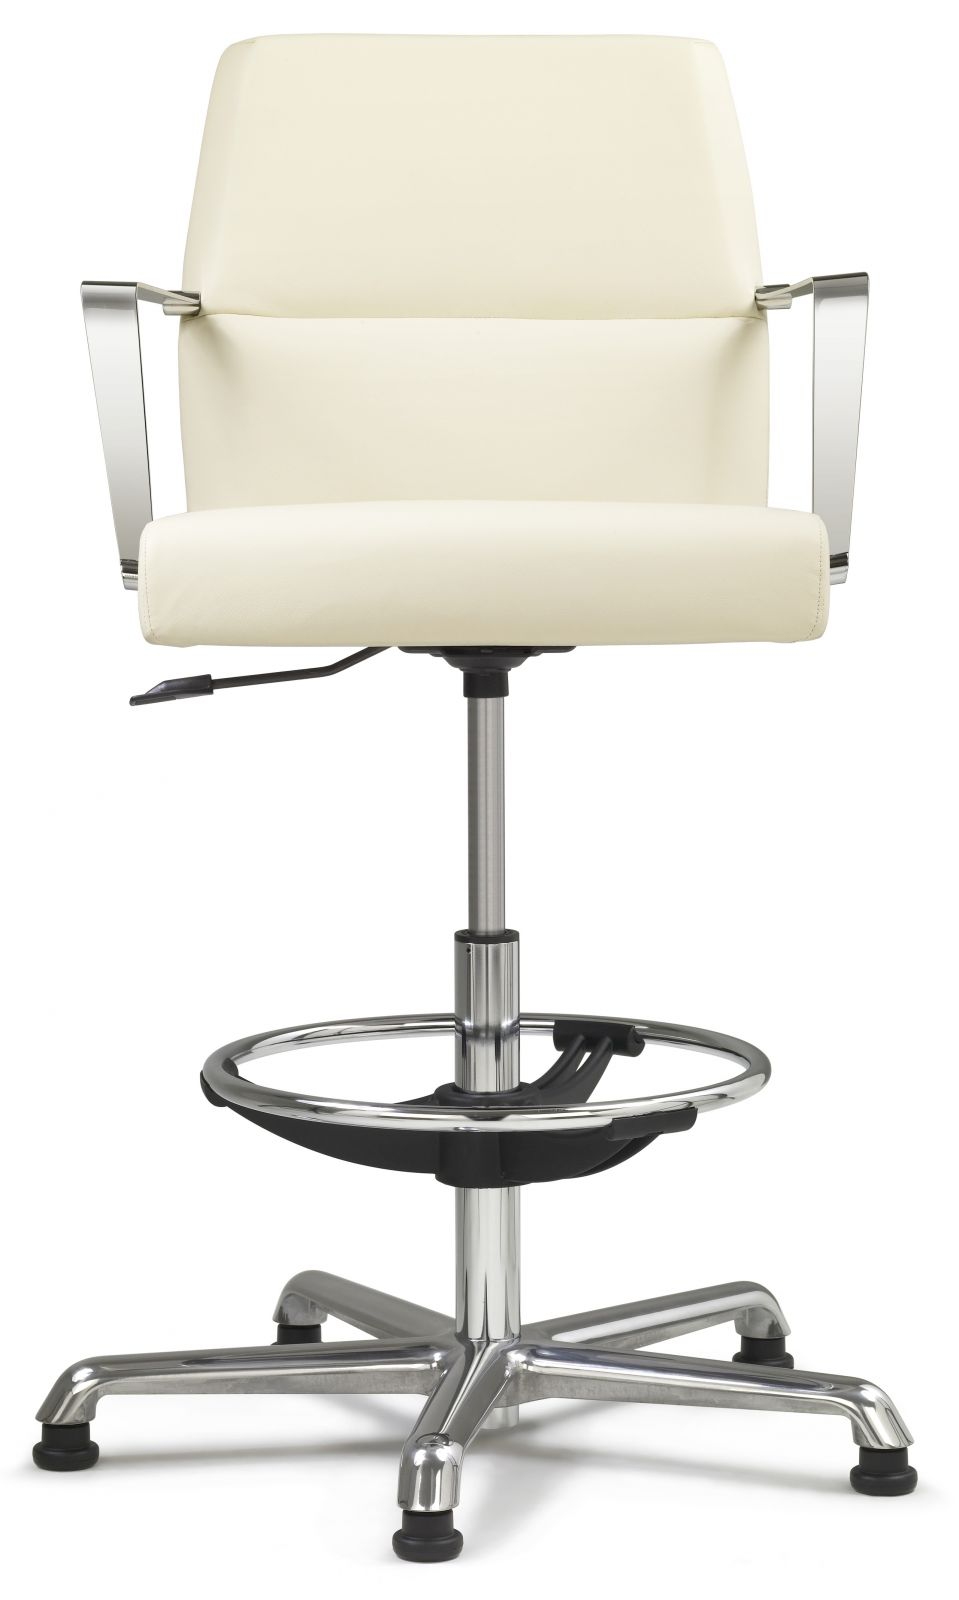 modern-bar-stools-Italian-furniture-large (11).jpg